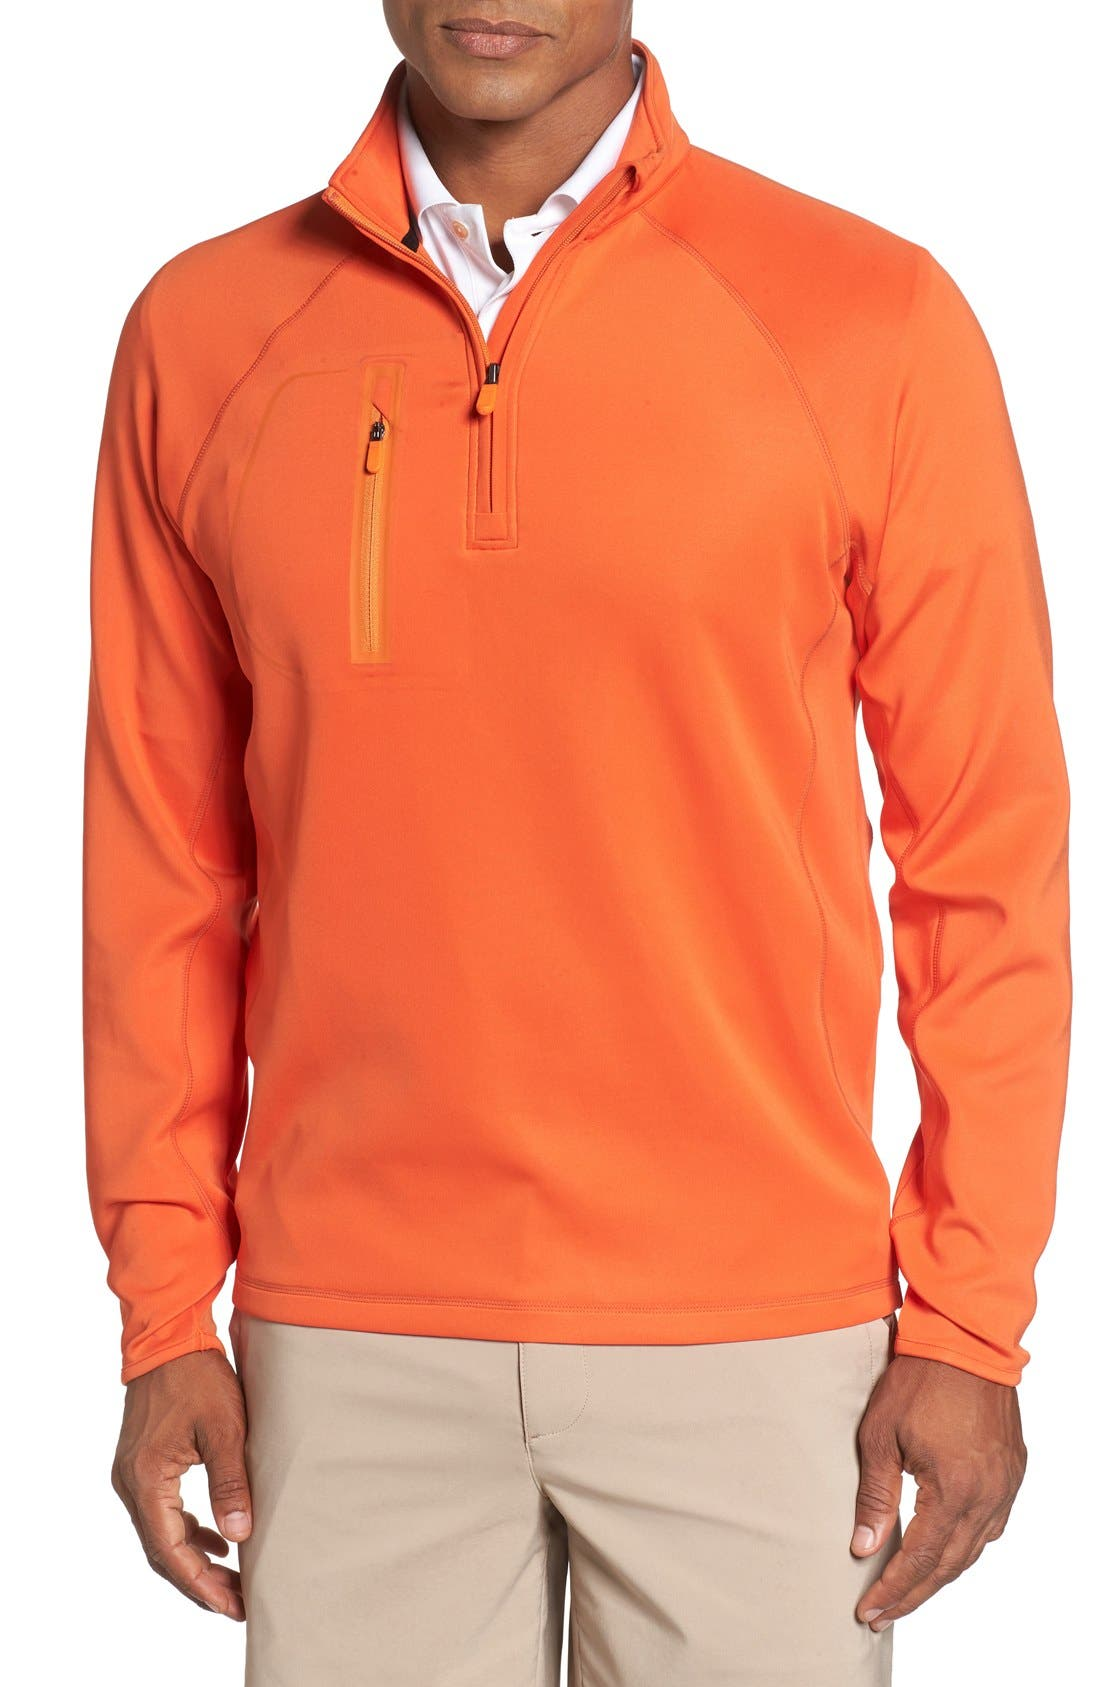 BOBBY JONES XH2O Crawford Stretch Quarter Zip Golf